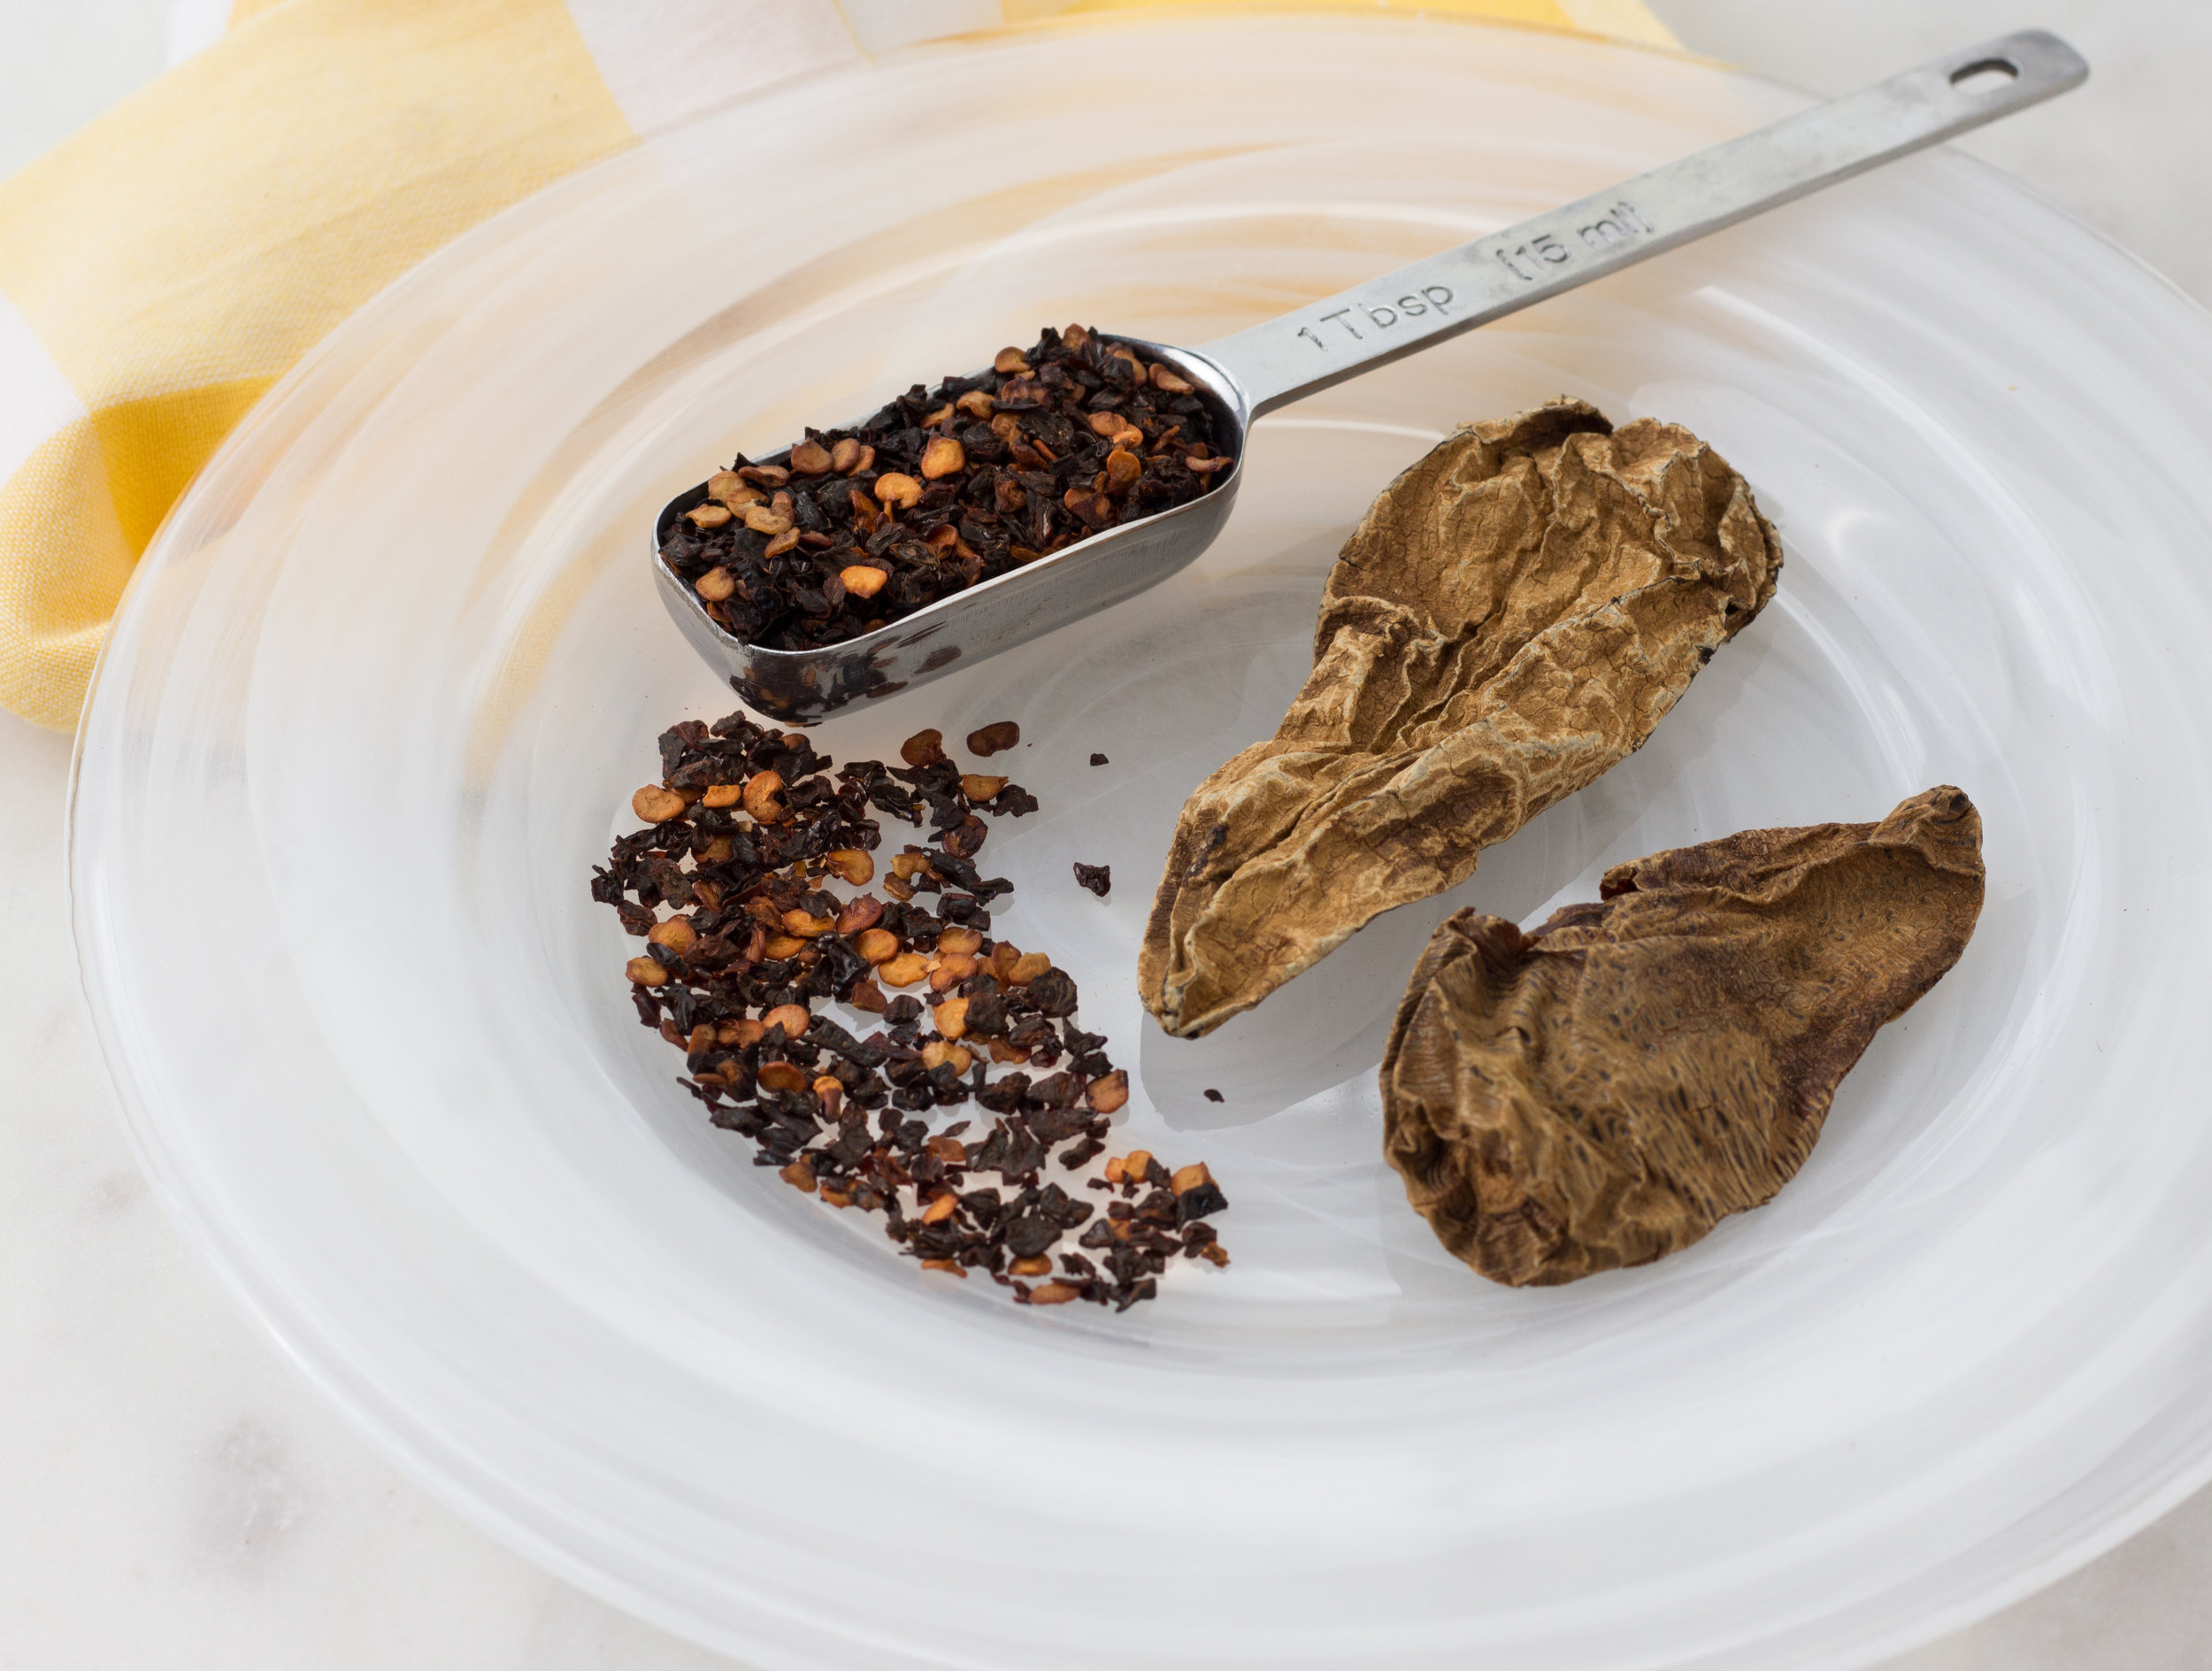 About Chipotle Peppers - Chipotle peppers are smoked jalapeno peppers. There are two types. Chipotle